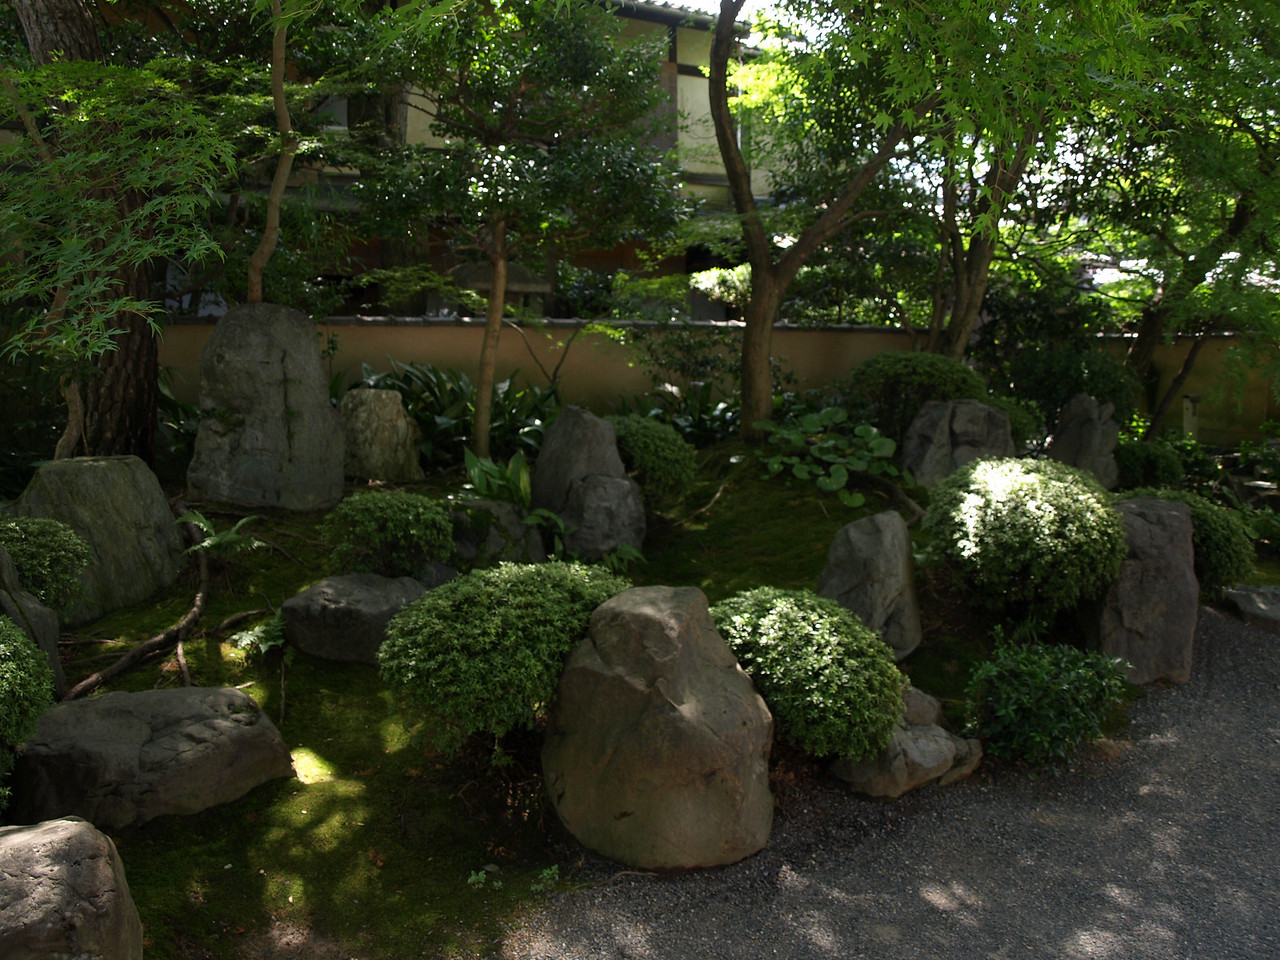 A rock garden surrounds the pagoda